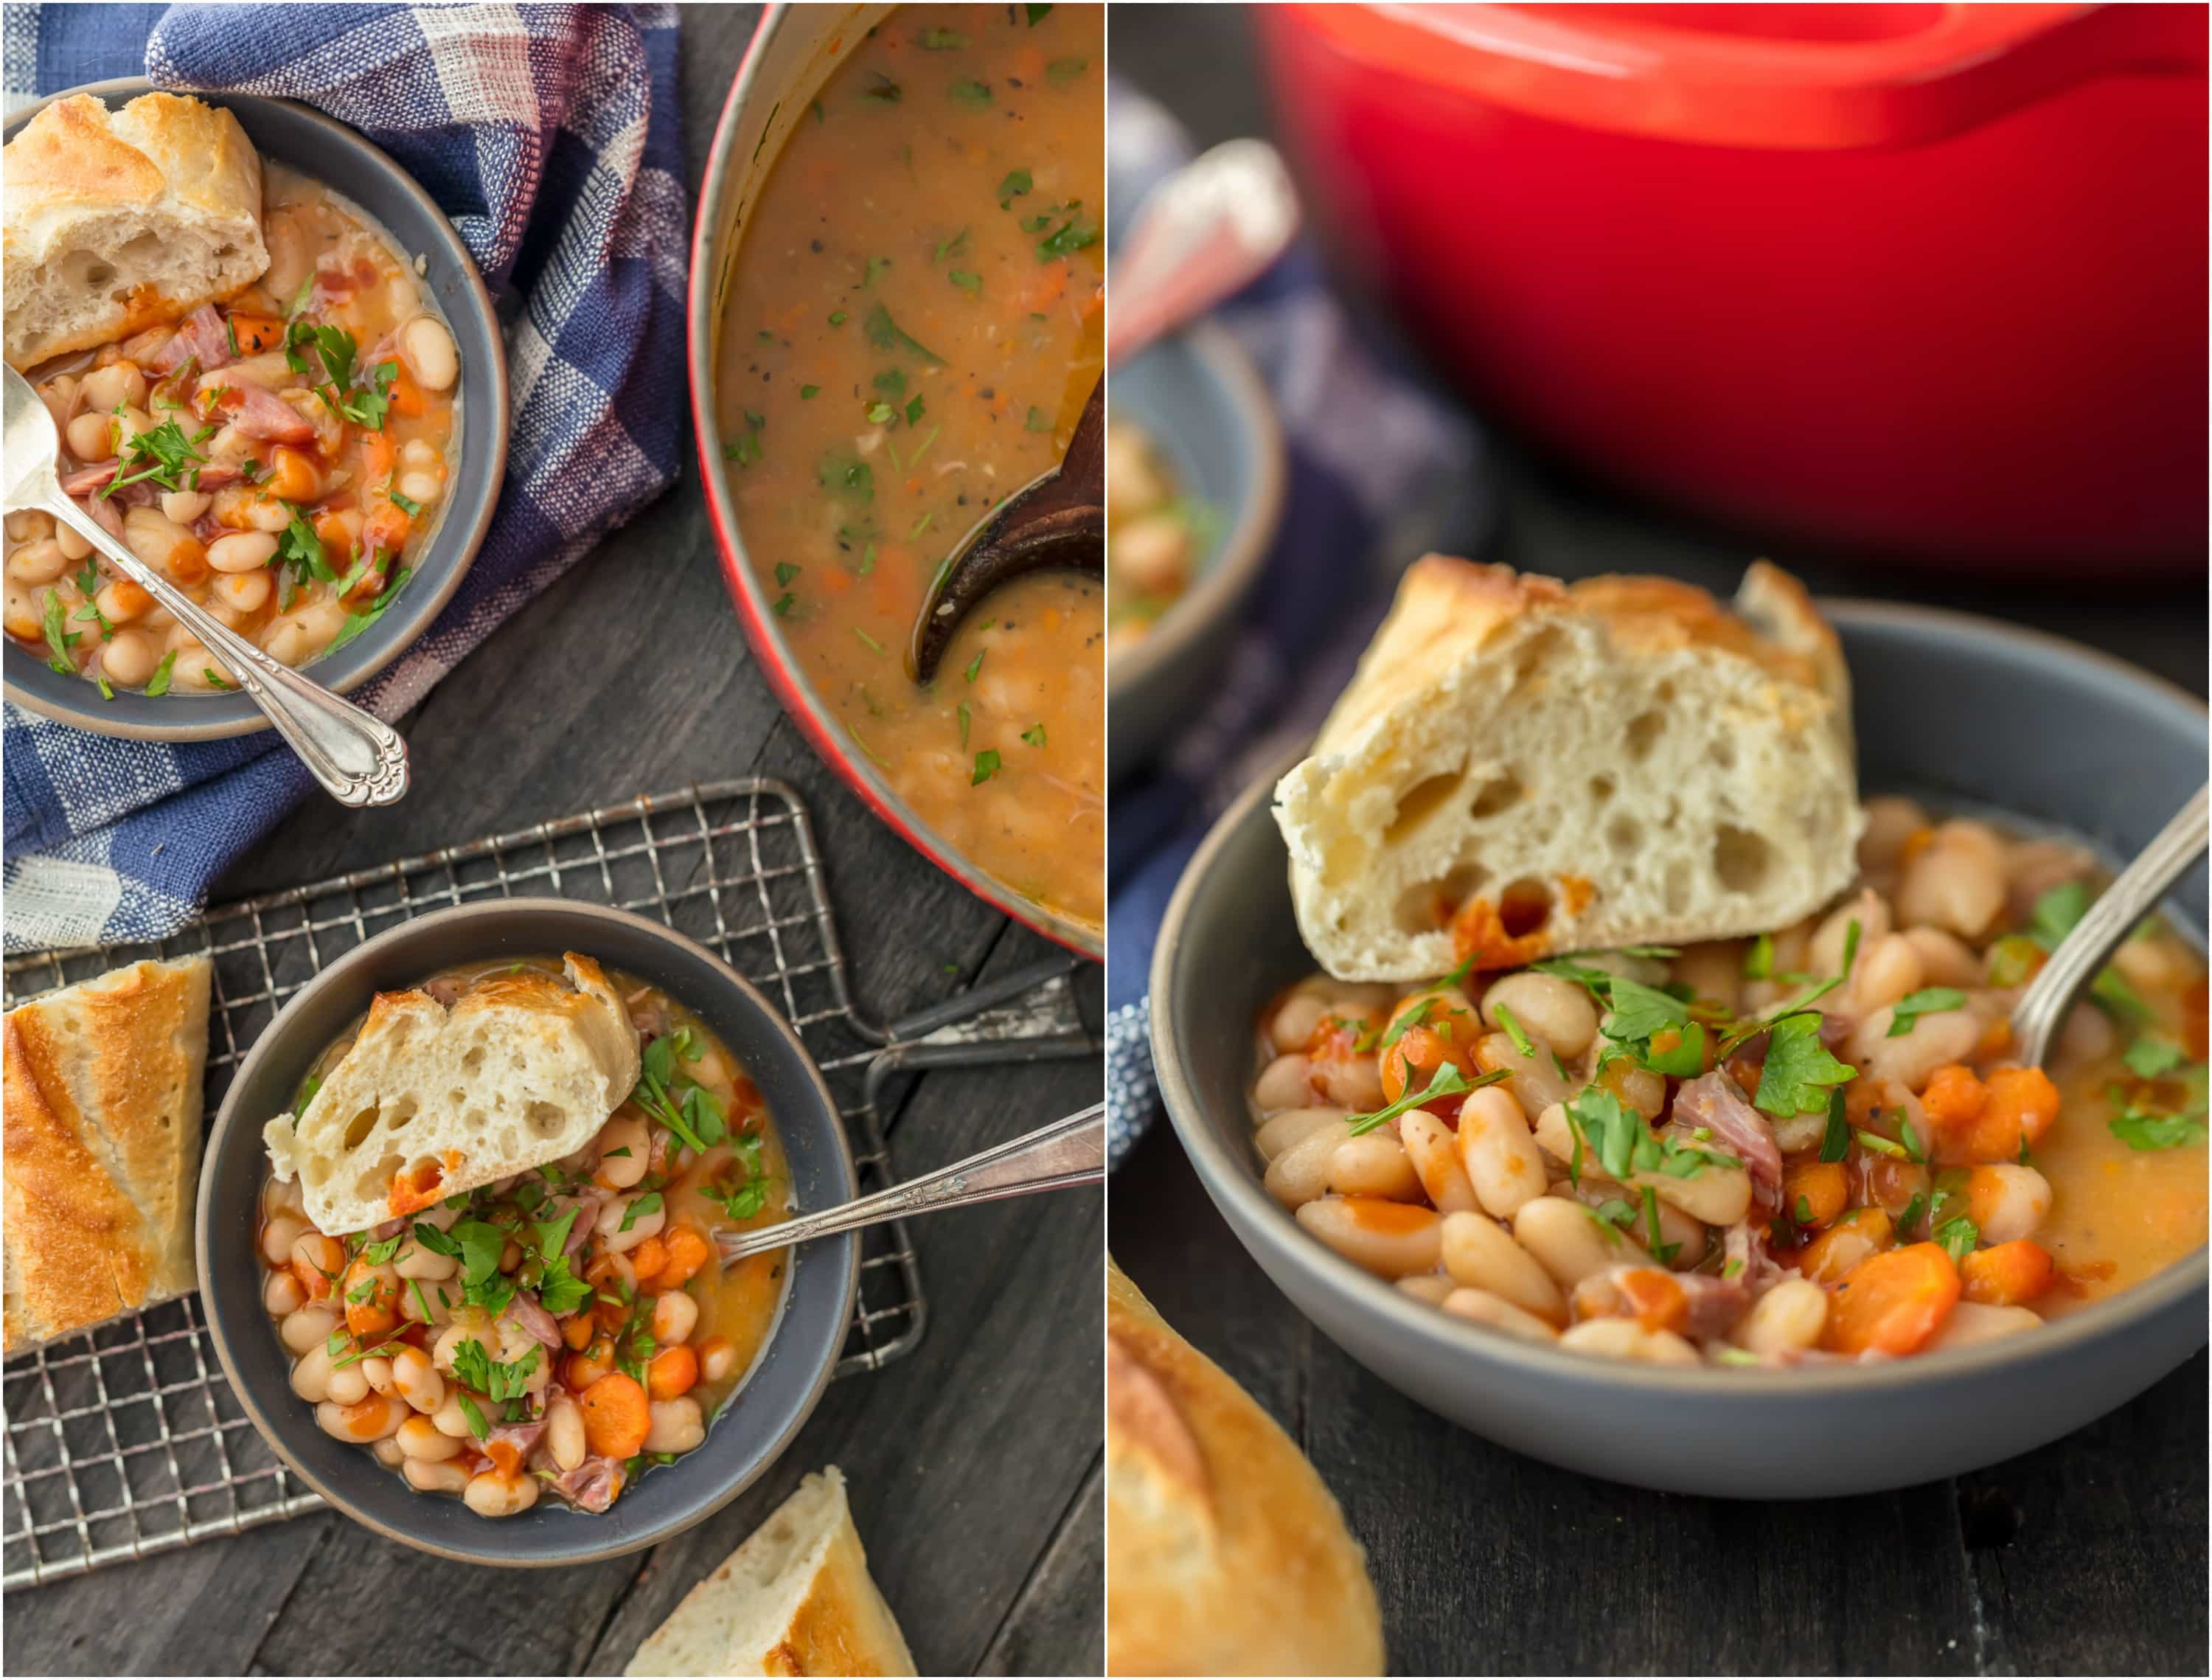 No better comfort food than EASY HAM AND BEAN SOUP! Love this hearty soup when the weather turns cool. Easy to make and something the entire family will love!